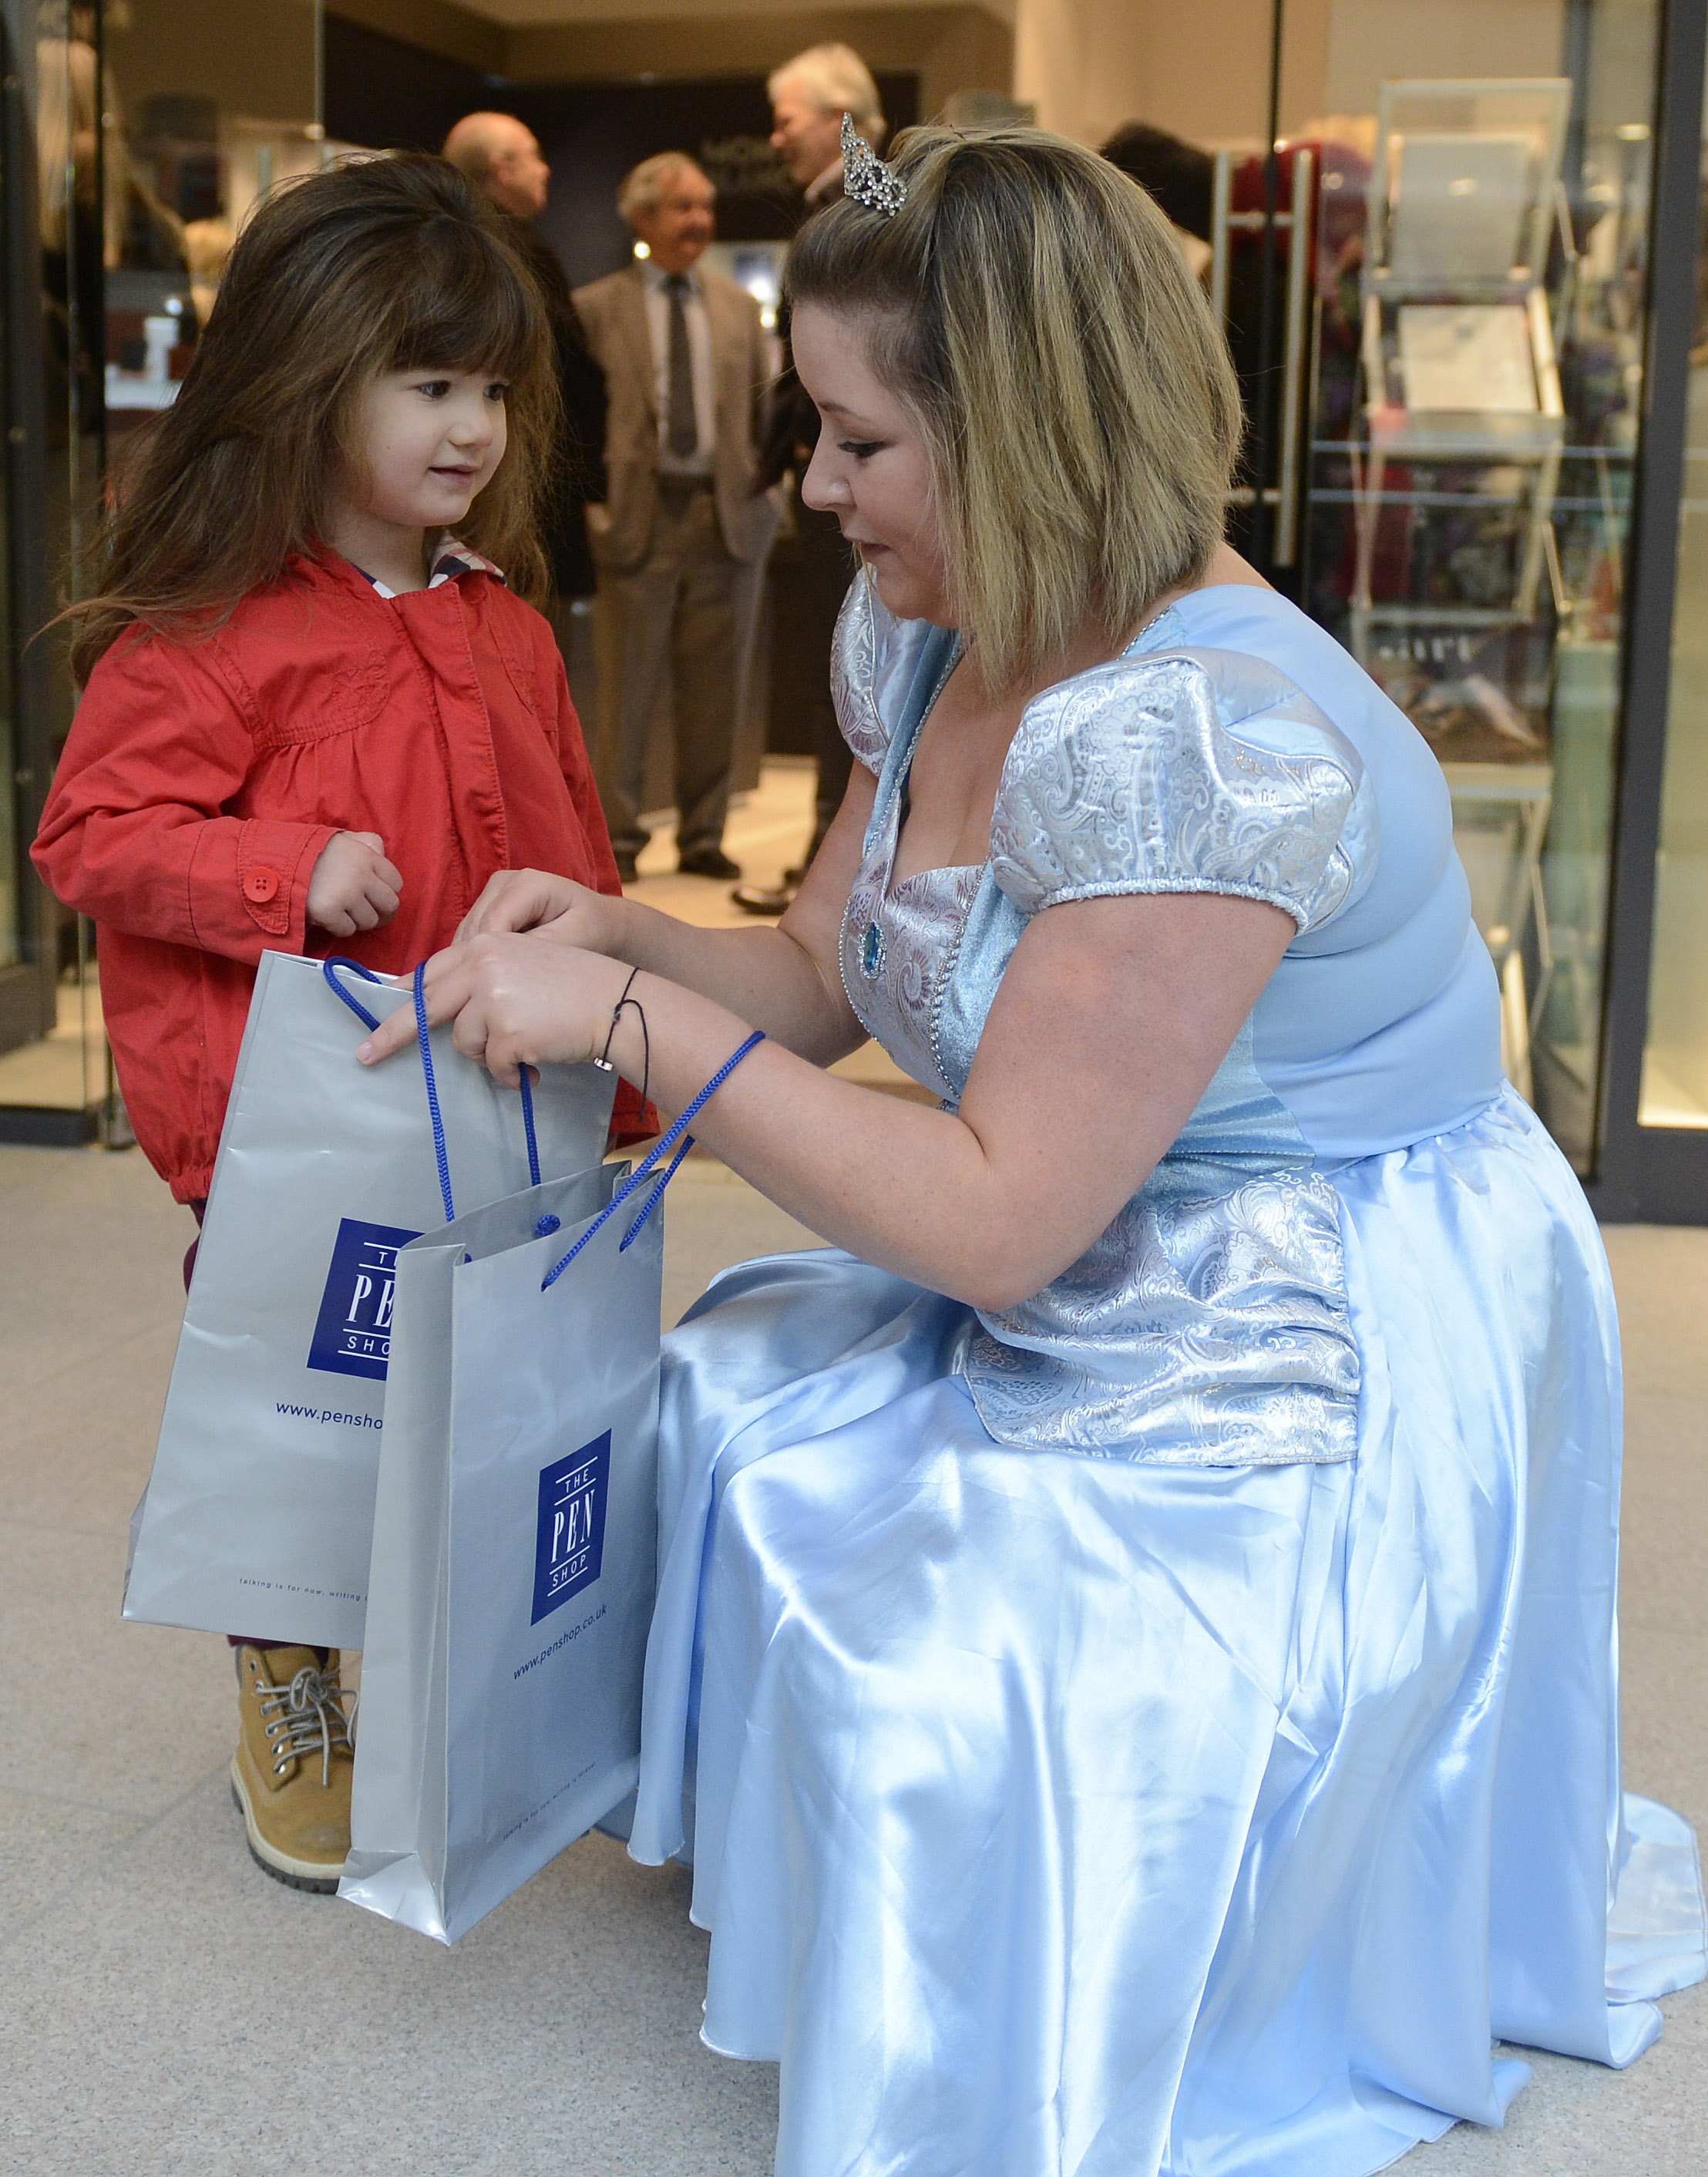 isabelle-sykes-aged-3-with-cinderella-at-the-opening-of-the-pen-shop-leeds